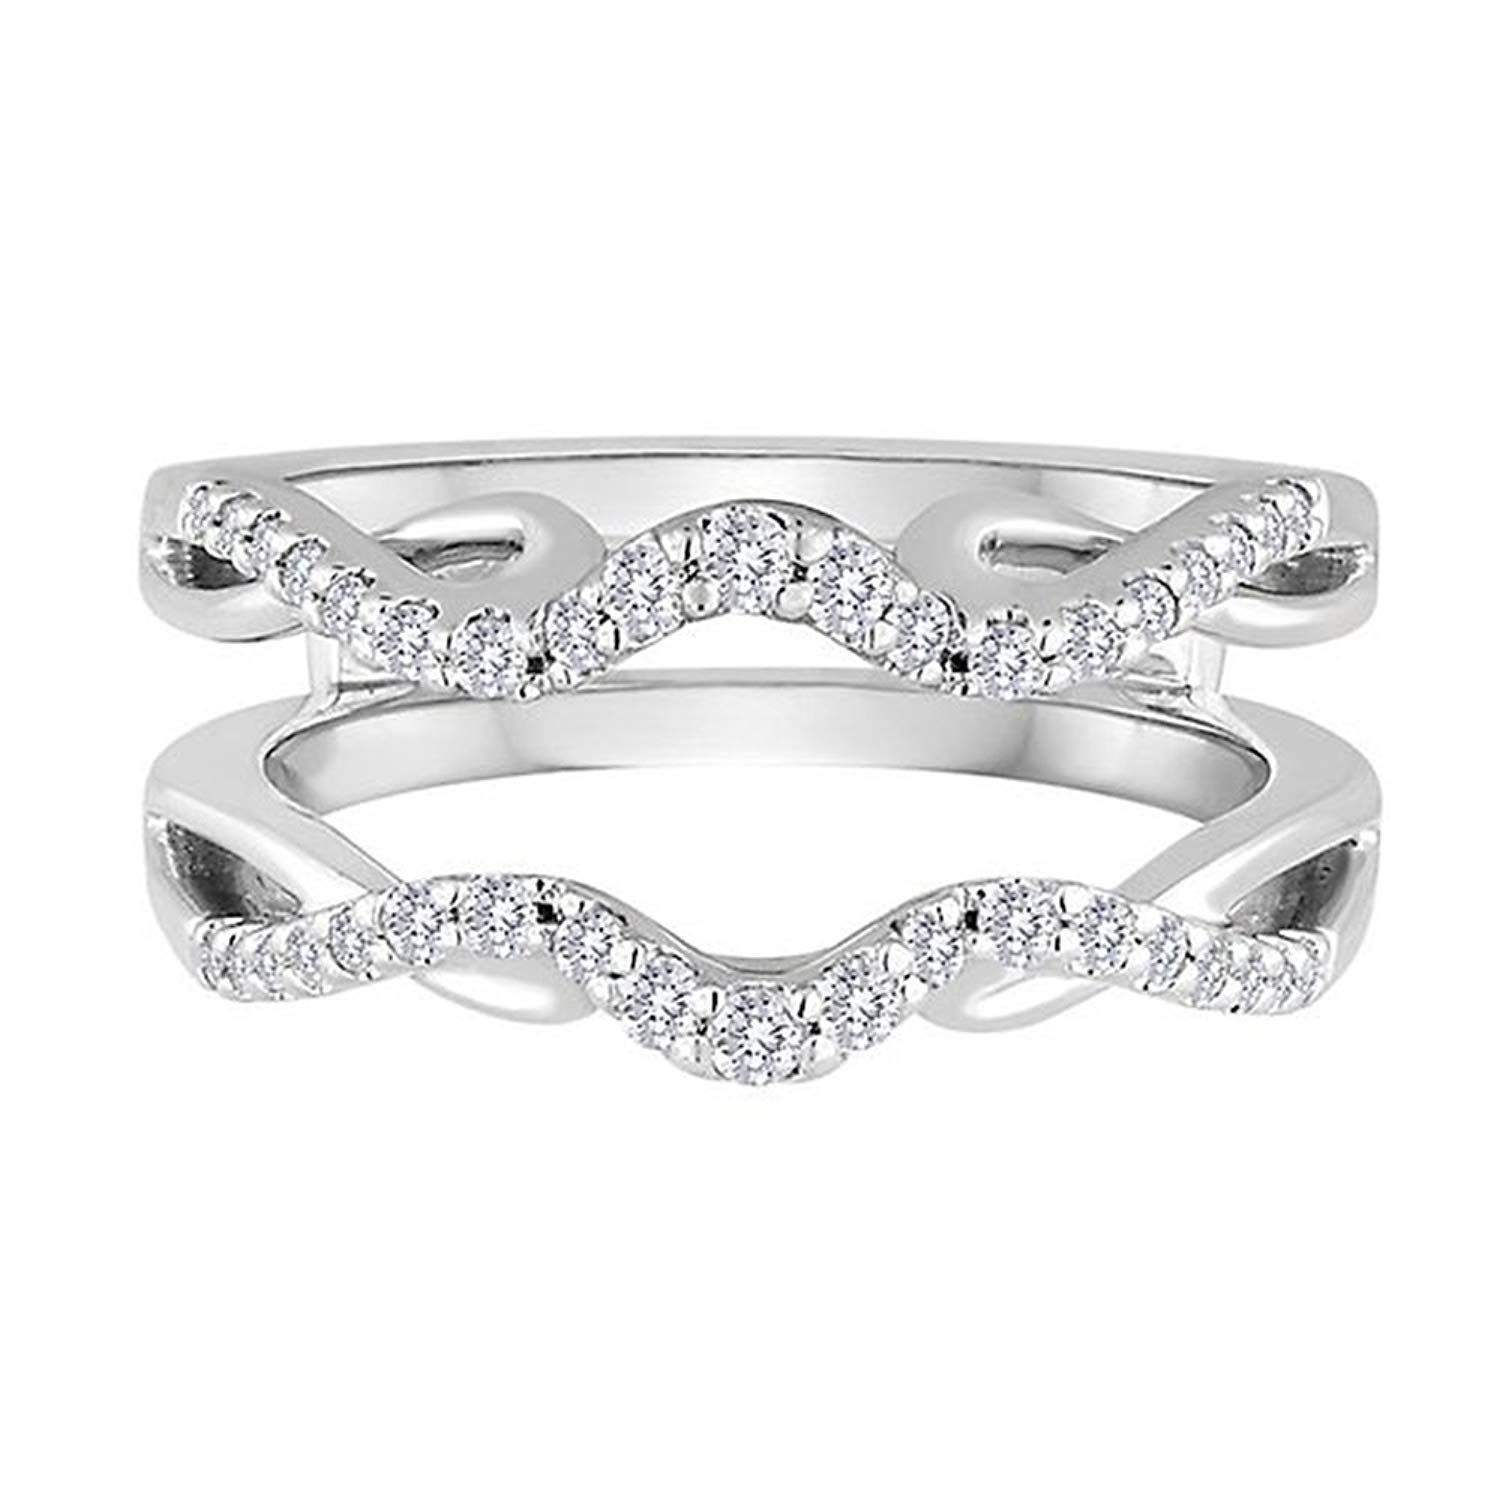 14K Solid White Gold Plated 1/3Ct Round Simulated Diamond Regarding 2020 Diamond Double Row Contour Tiara Anniversary Bands In White Gold (View 1 of 25)